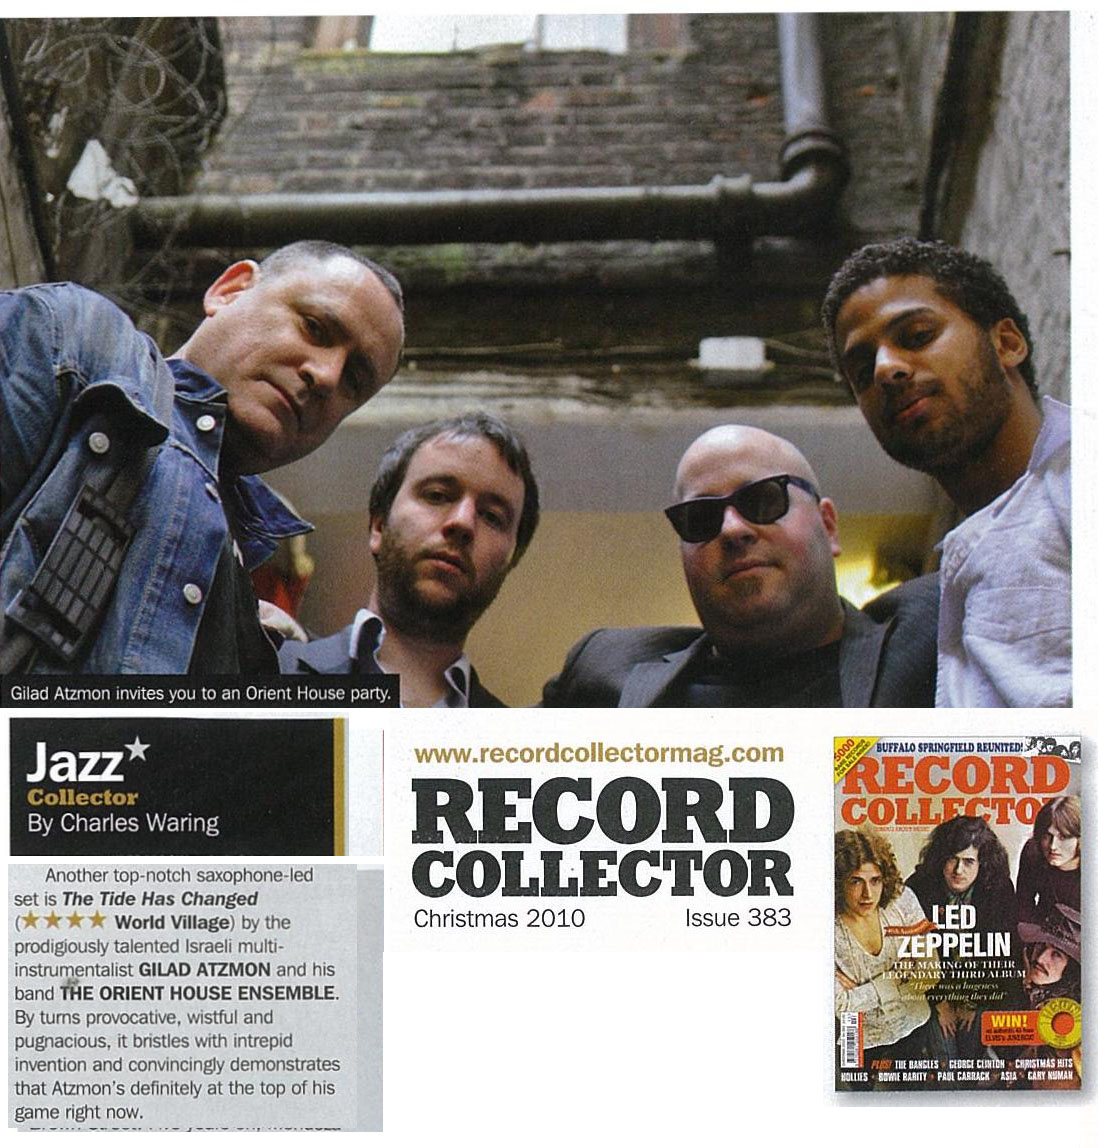 Gilad Atzmon The Tide Has Changed Record Collector Christmas 2010.jpg